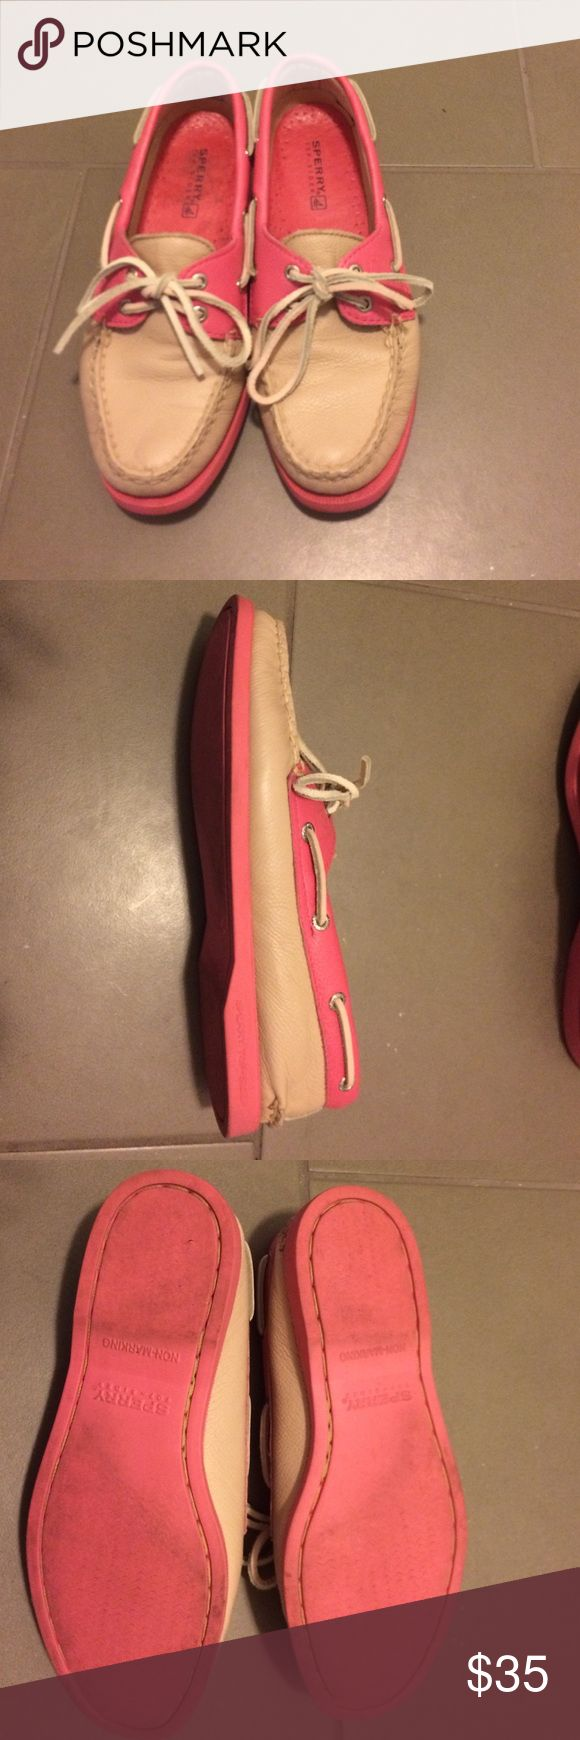 Sperry Top-Sider Women's Loafers Incredibly comfortable Sperry Top-sider loafer style boat shoes. Gently worn; in very good condition. Sperry Shoes Flats & Loafers